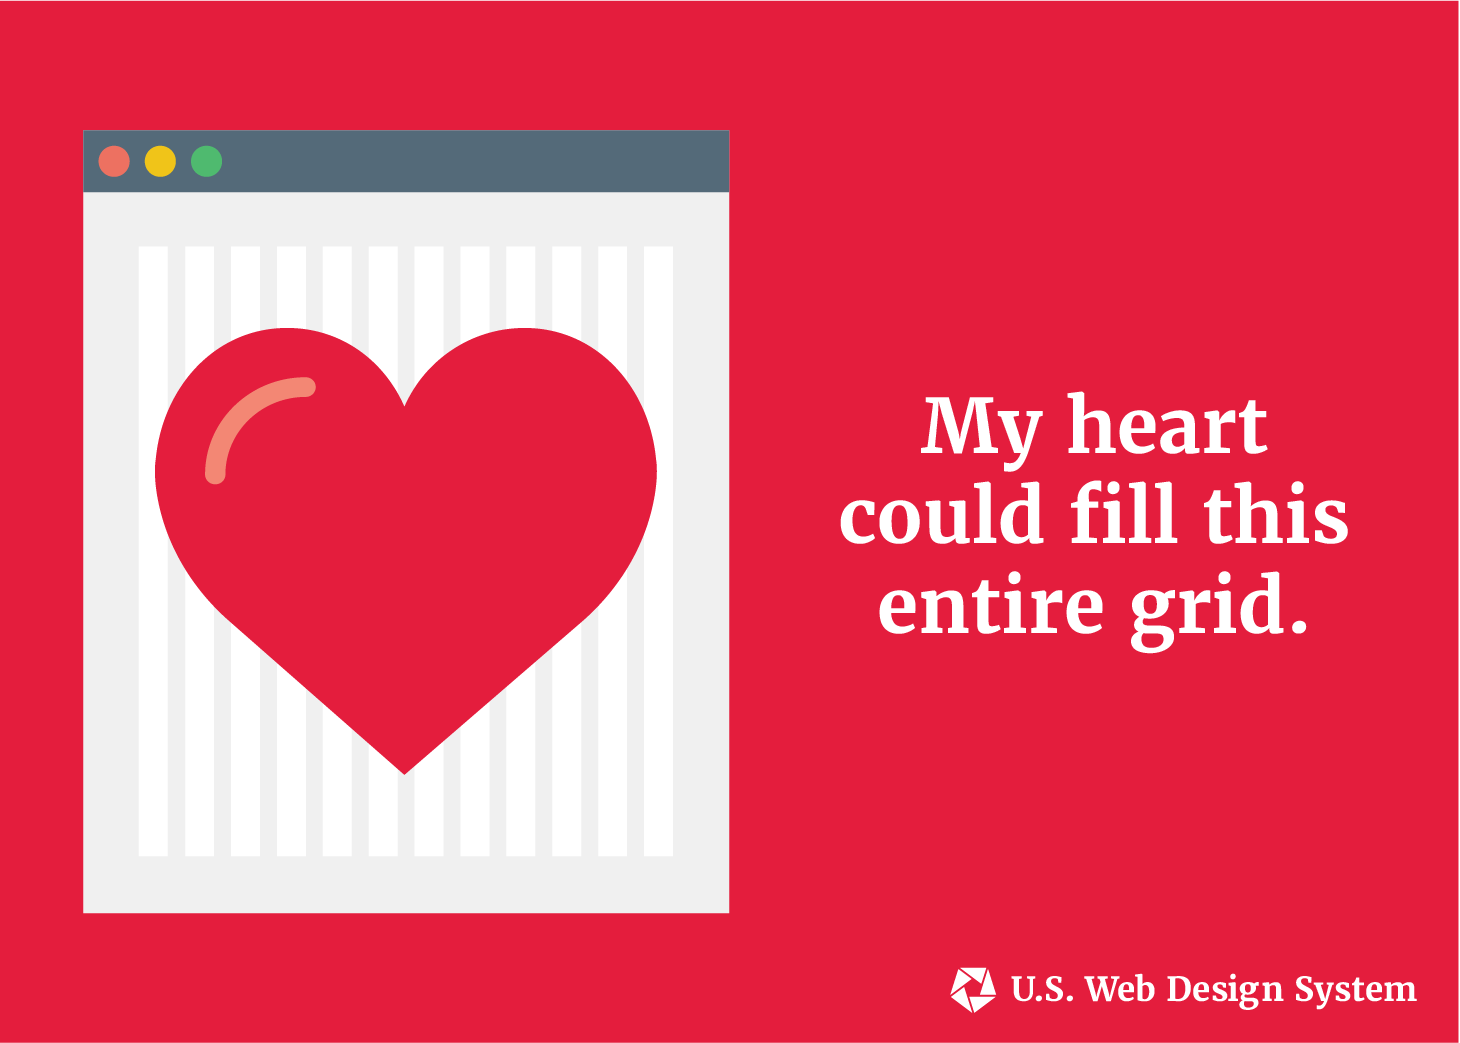 A browser window showing a heart filling up the entire USWDS grid